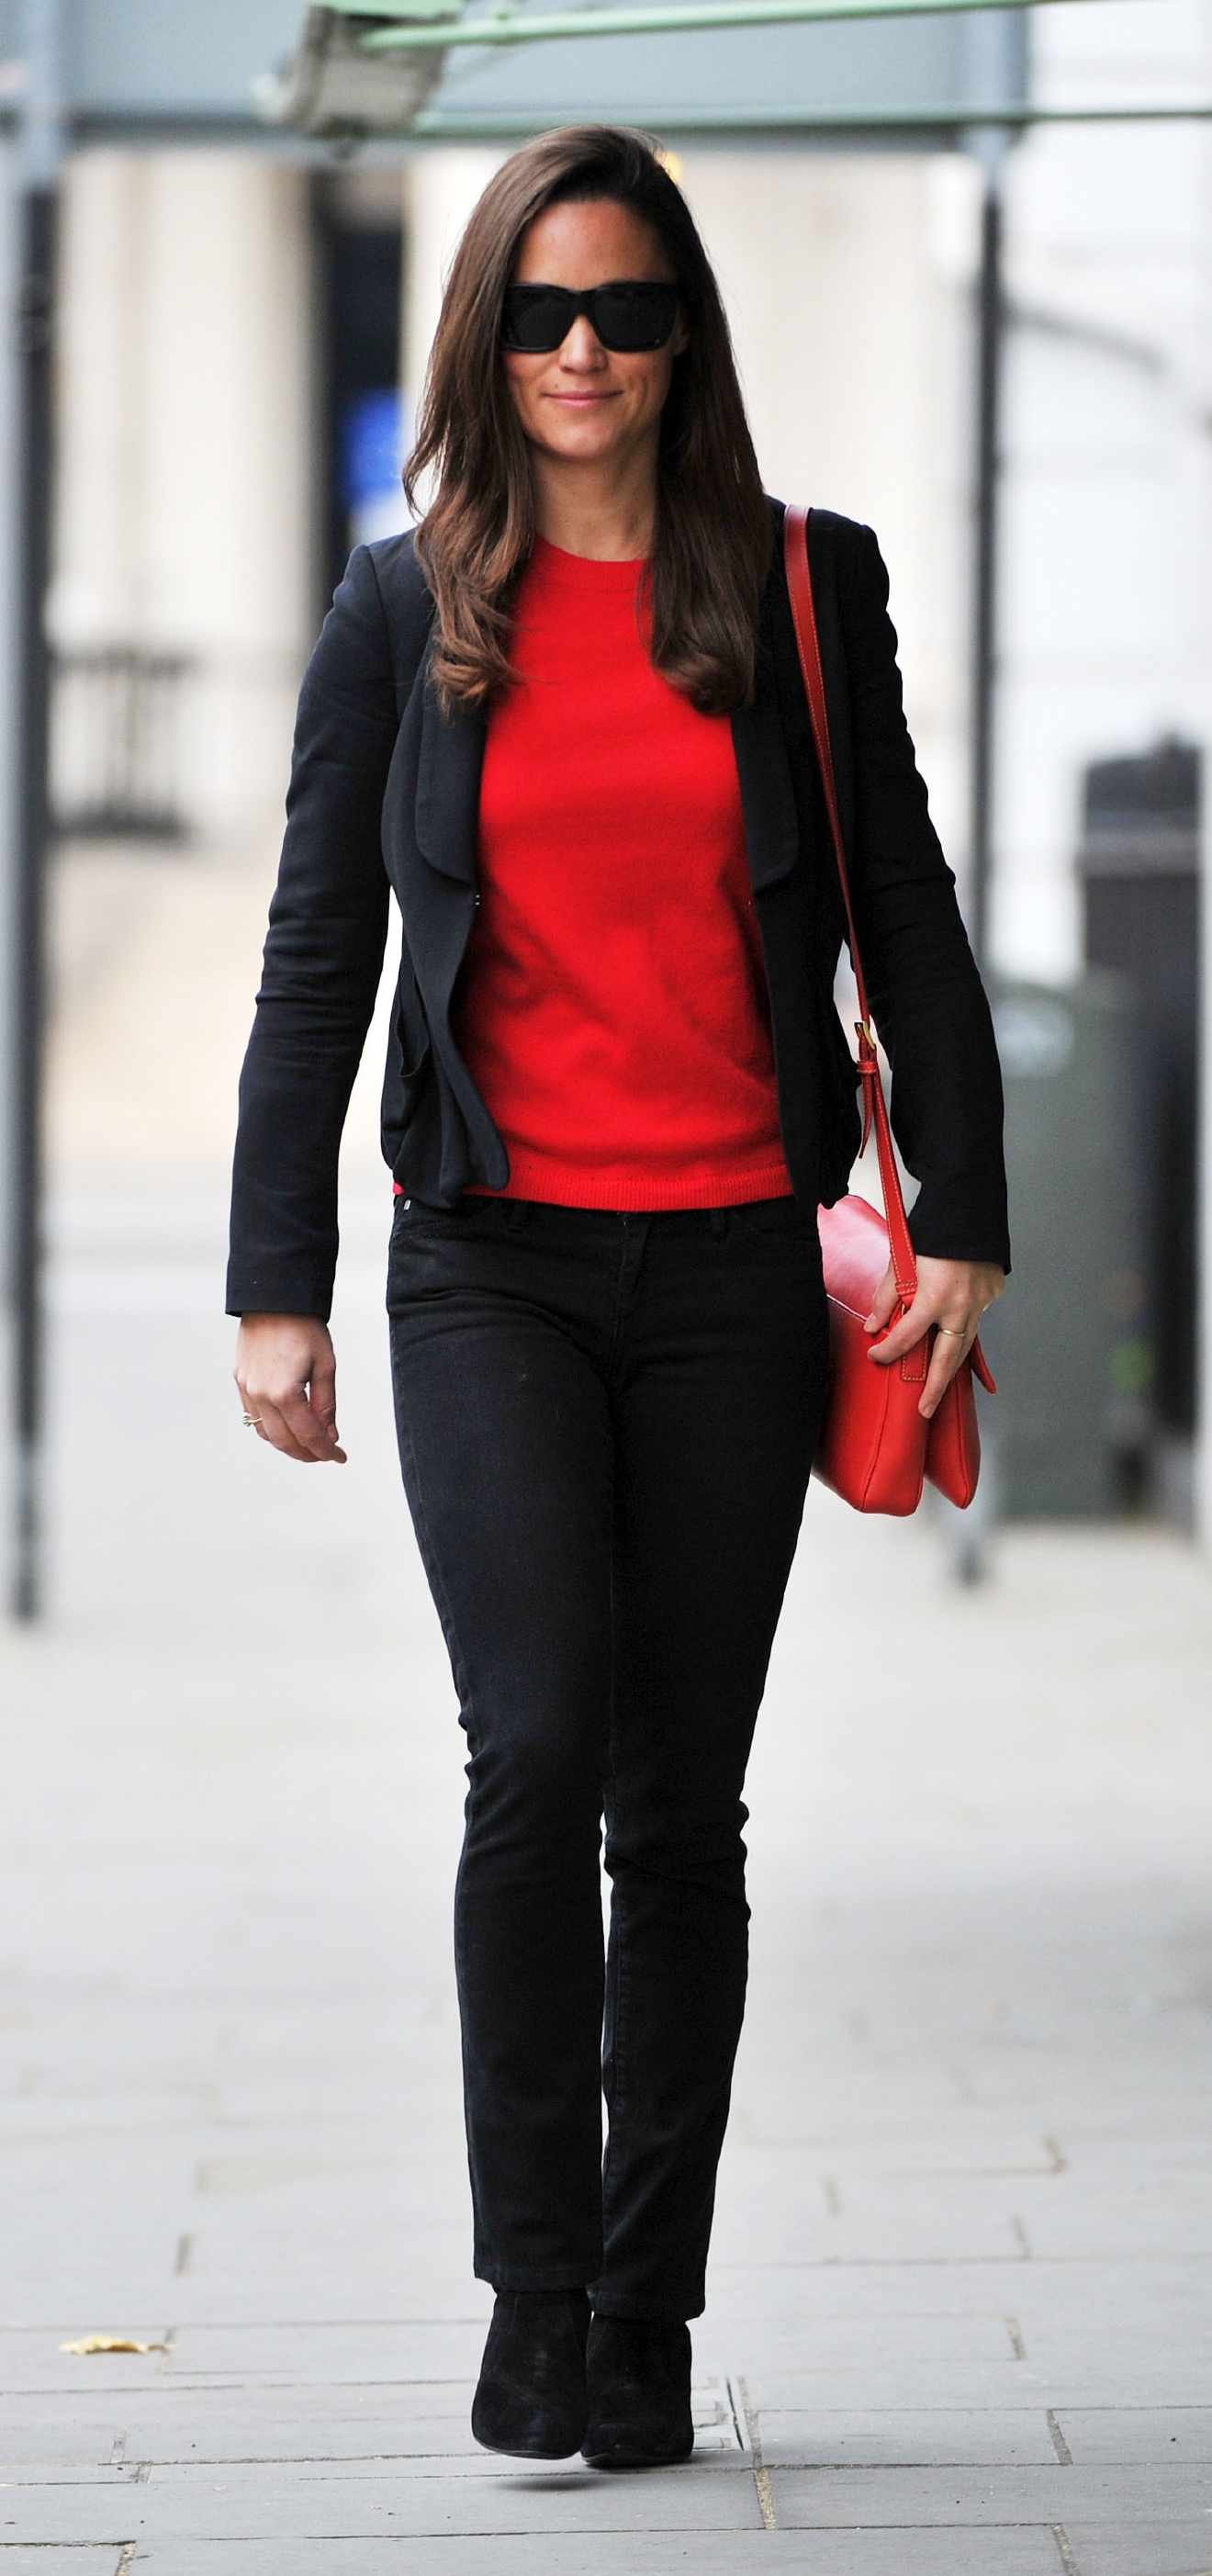 Pippa Middleton out and about in central London London, England - 15.10.12  Featuring: Pippa Middleton Where: London, United Kingdom When: 15 Oct 2012 Credit: WENN